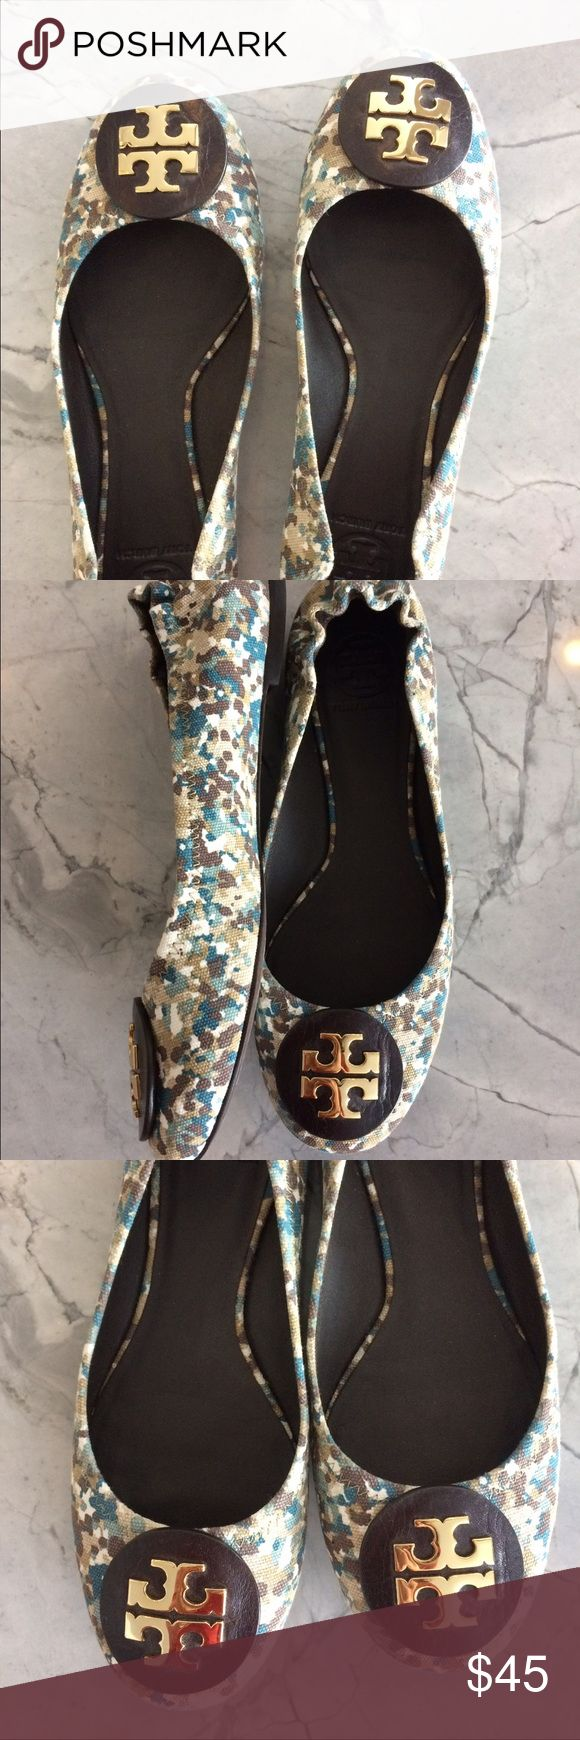 Tory Burch Flats fabric/leather Super cute Tory Burch fabric flats. The silver decal sits atop a brown leather circle. I bought these at the Nord rack last year. They are perfect for fall. Tory Burch Shoes Flats & Loafers